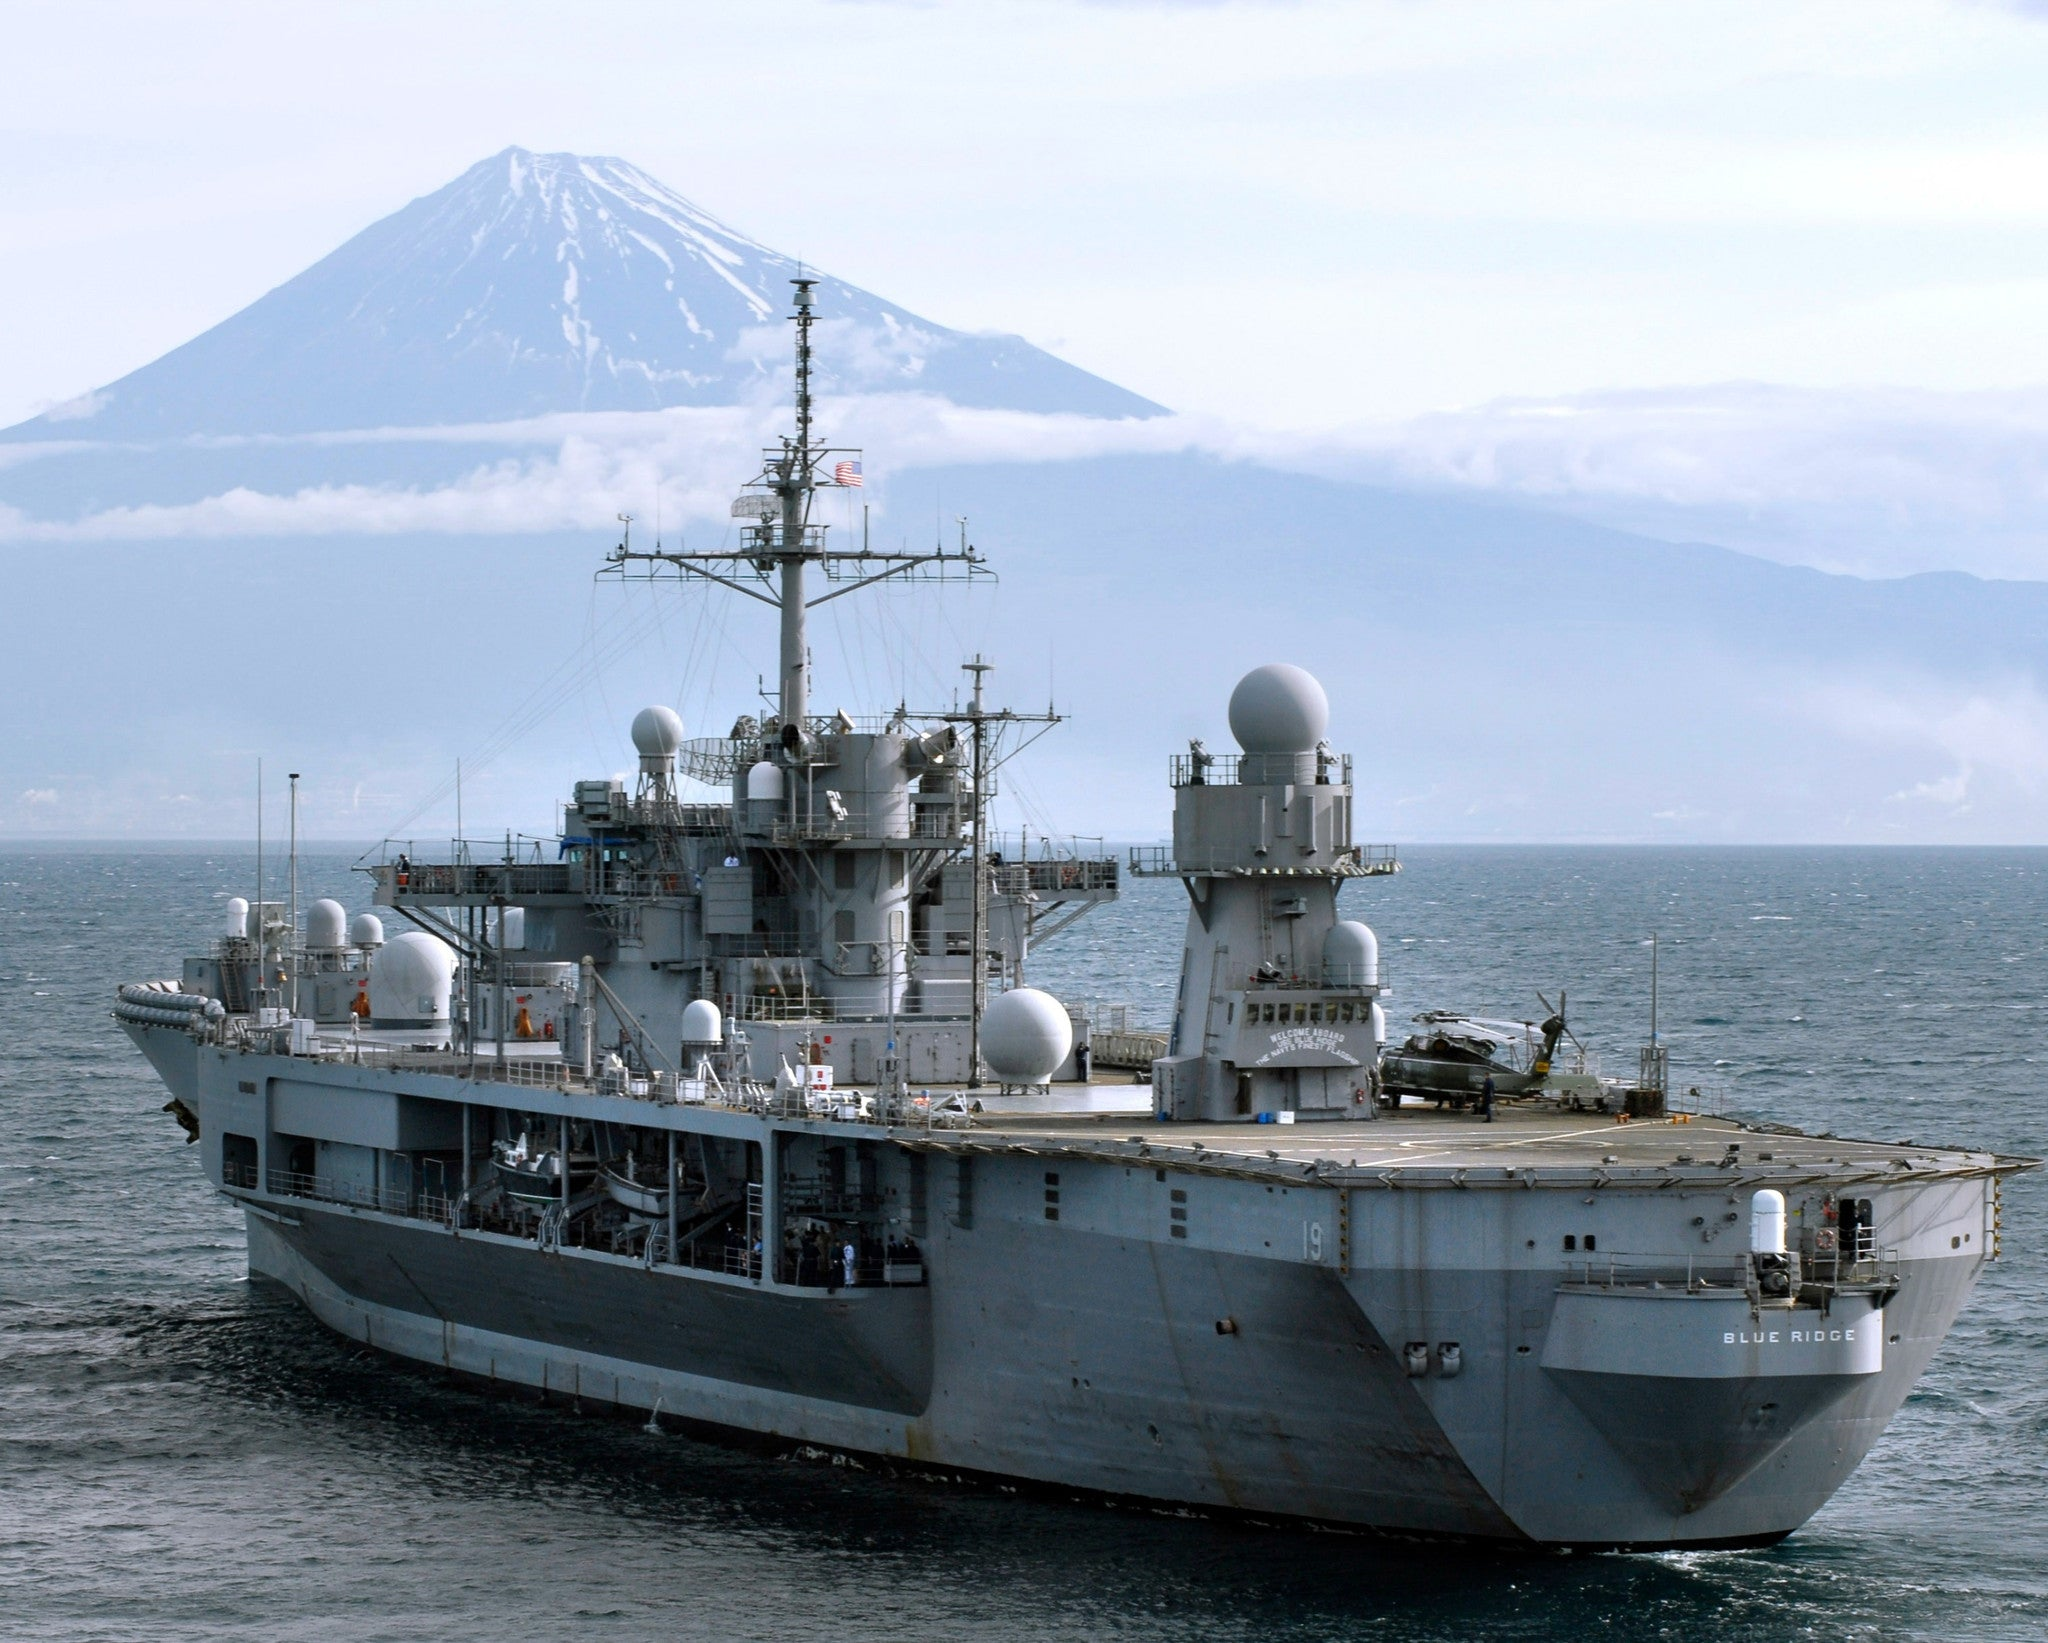 "USS Blue Ridge Off Mount Fuji, Japan May 30, 2008 - 8 x 10"" Photograph"